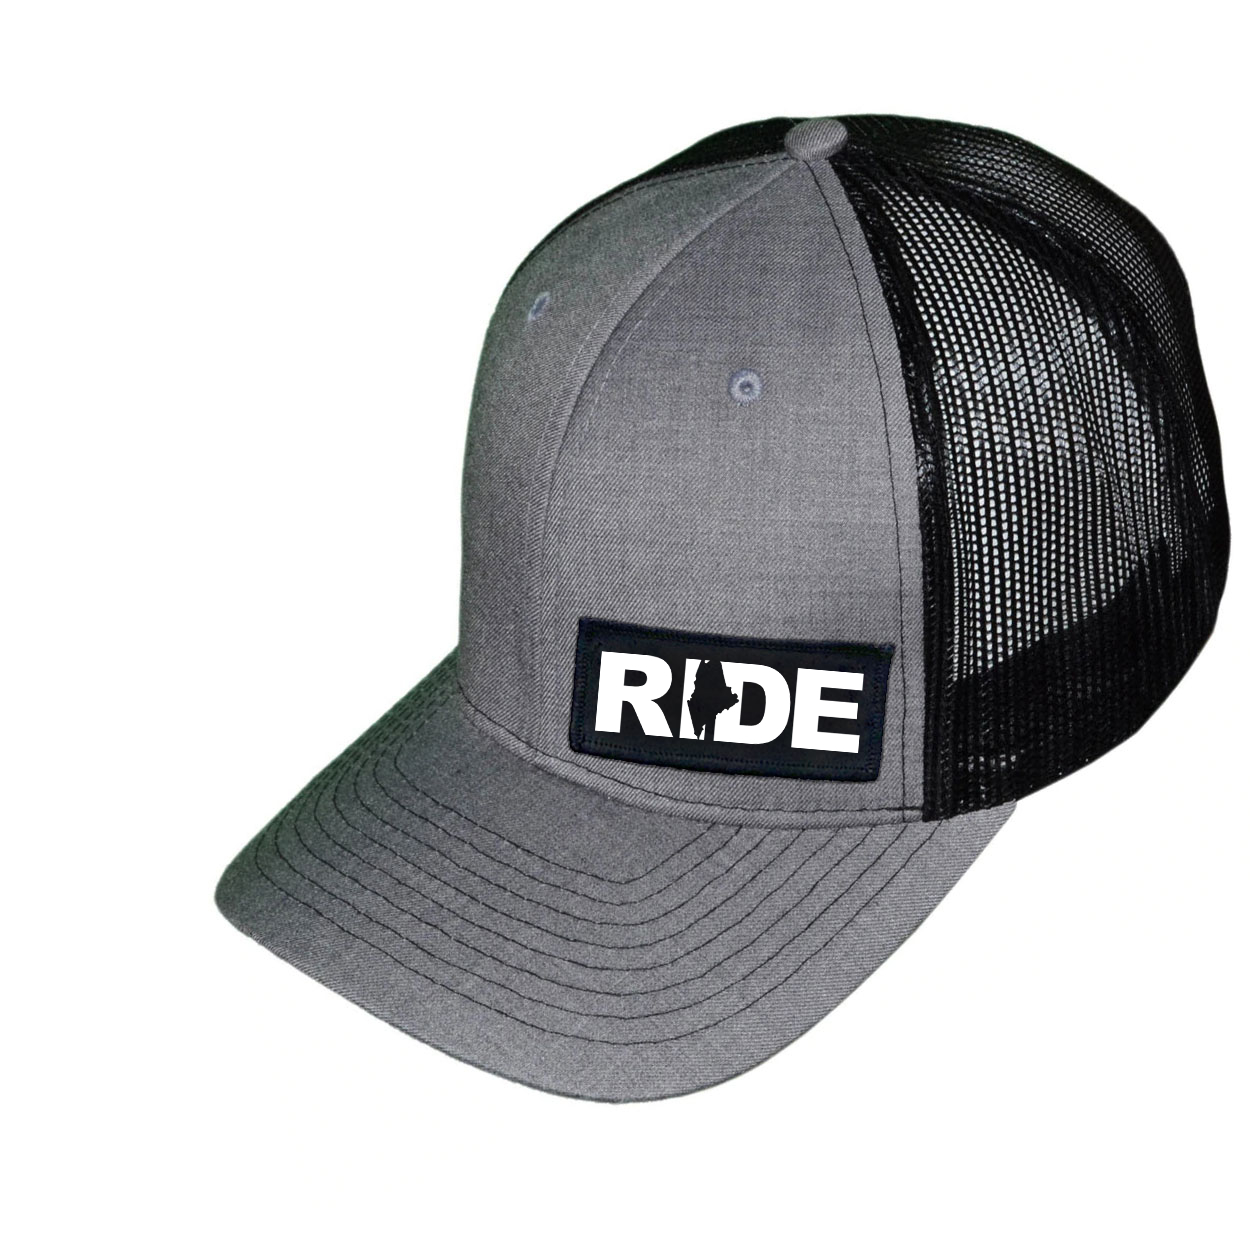 Ride Maine Night Out Woven Patch Snapback Trucker Hat Heather Gray/Black (White Logo)